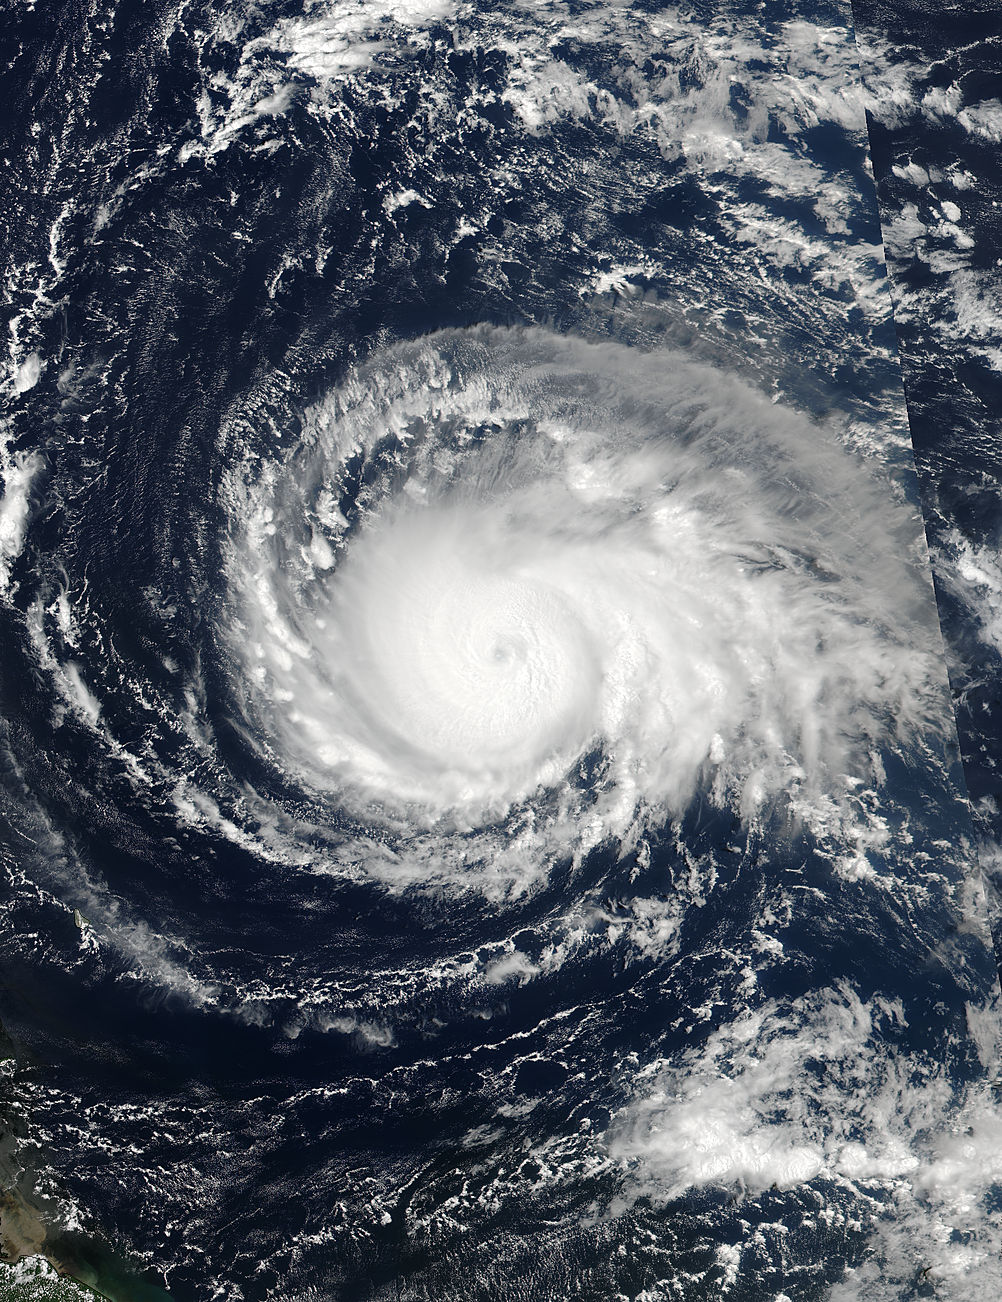 4 at 17 24 utc nasa noaa s suomi npp satellite captured this view of hurricane irma as a category 4 hurricane approaching the leeward islands